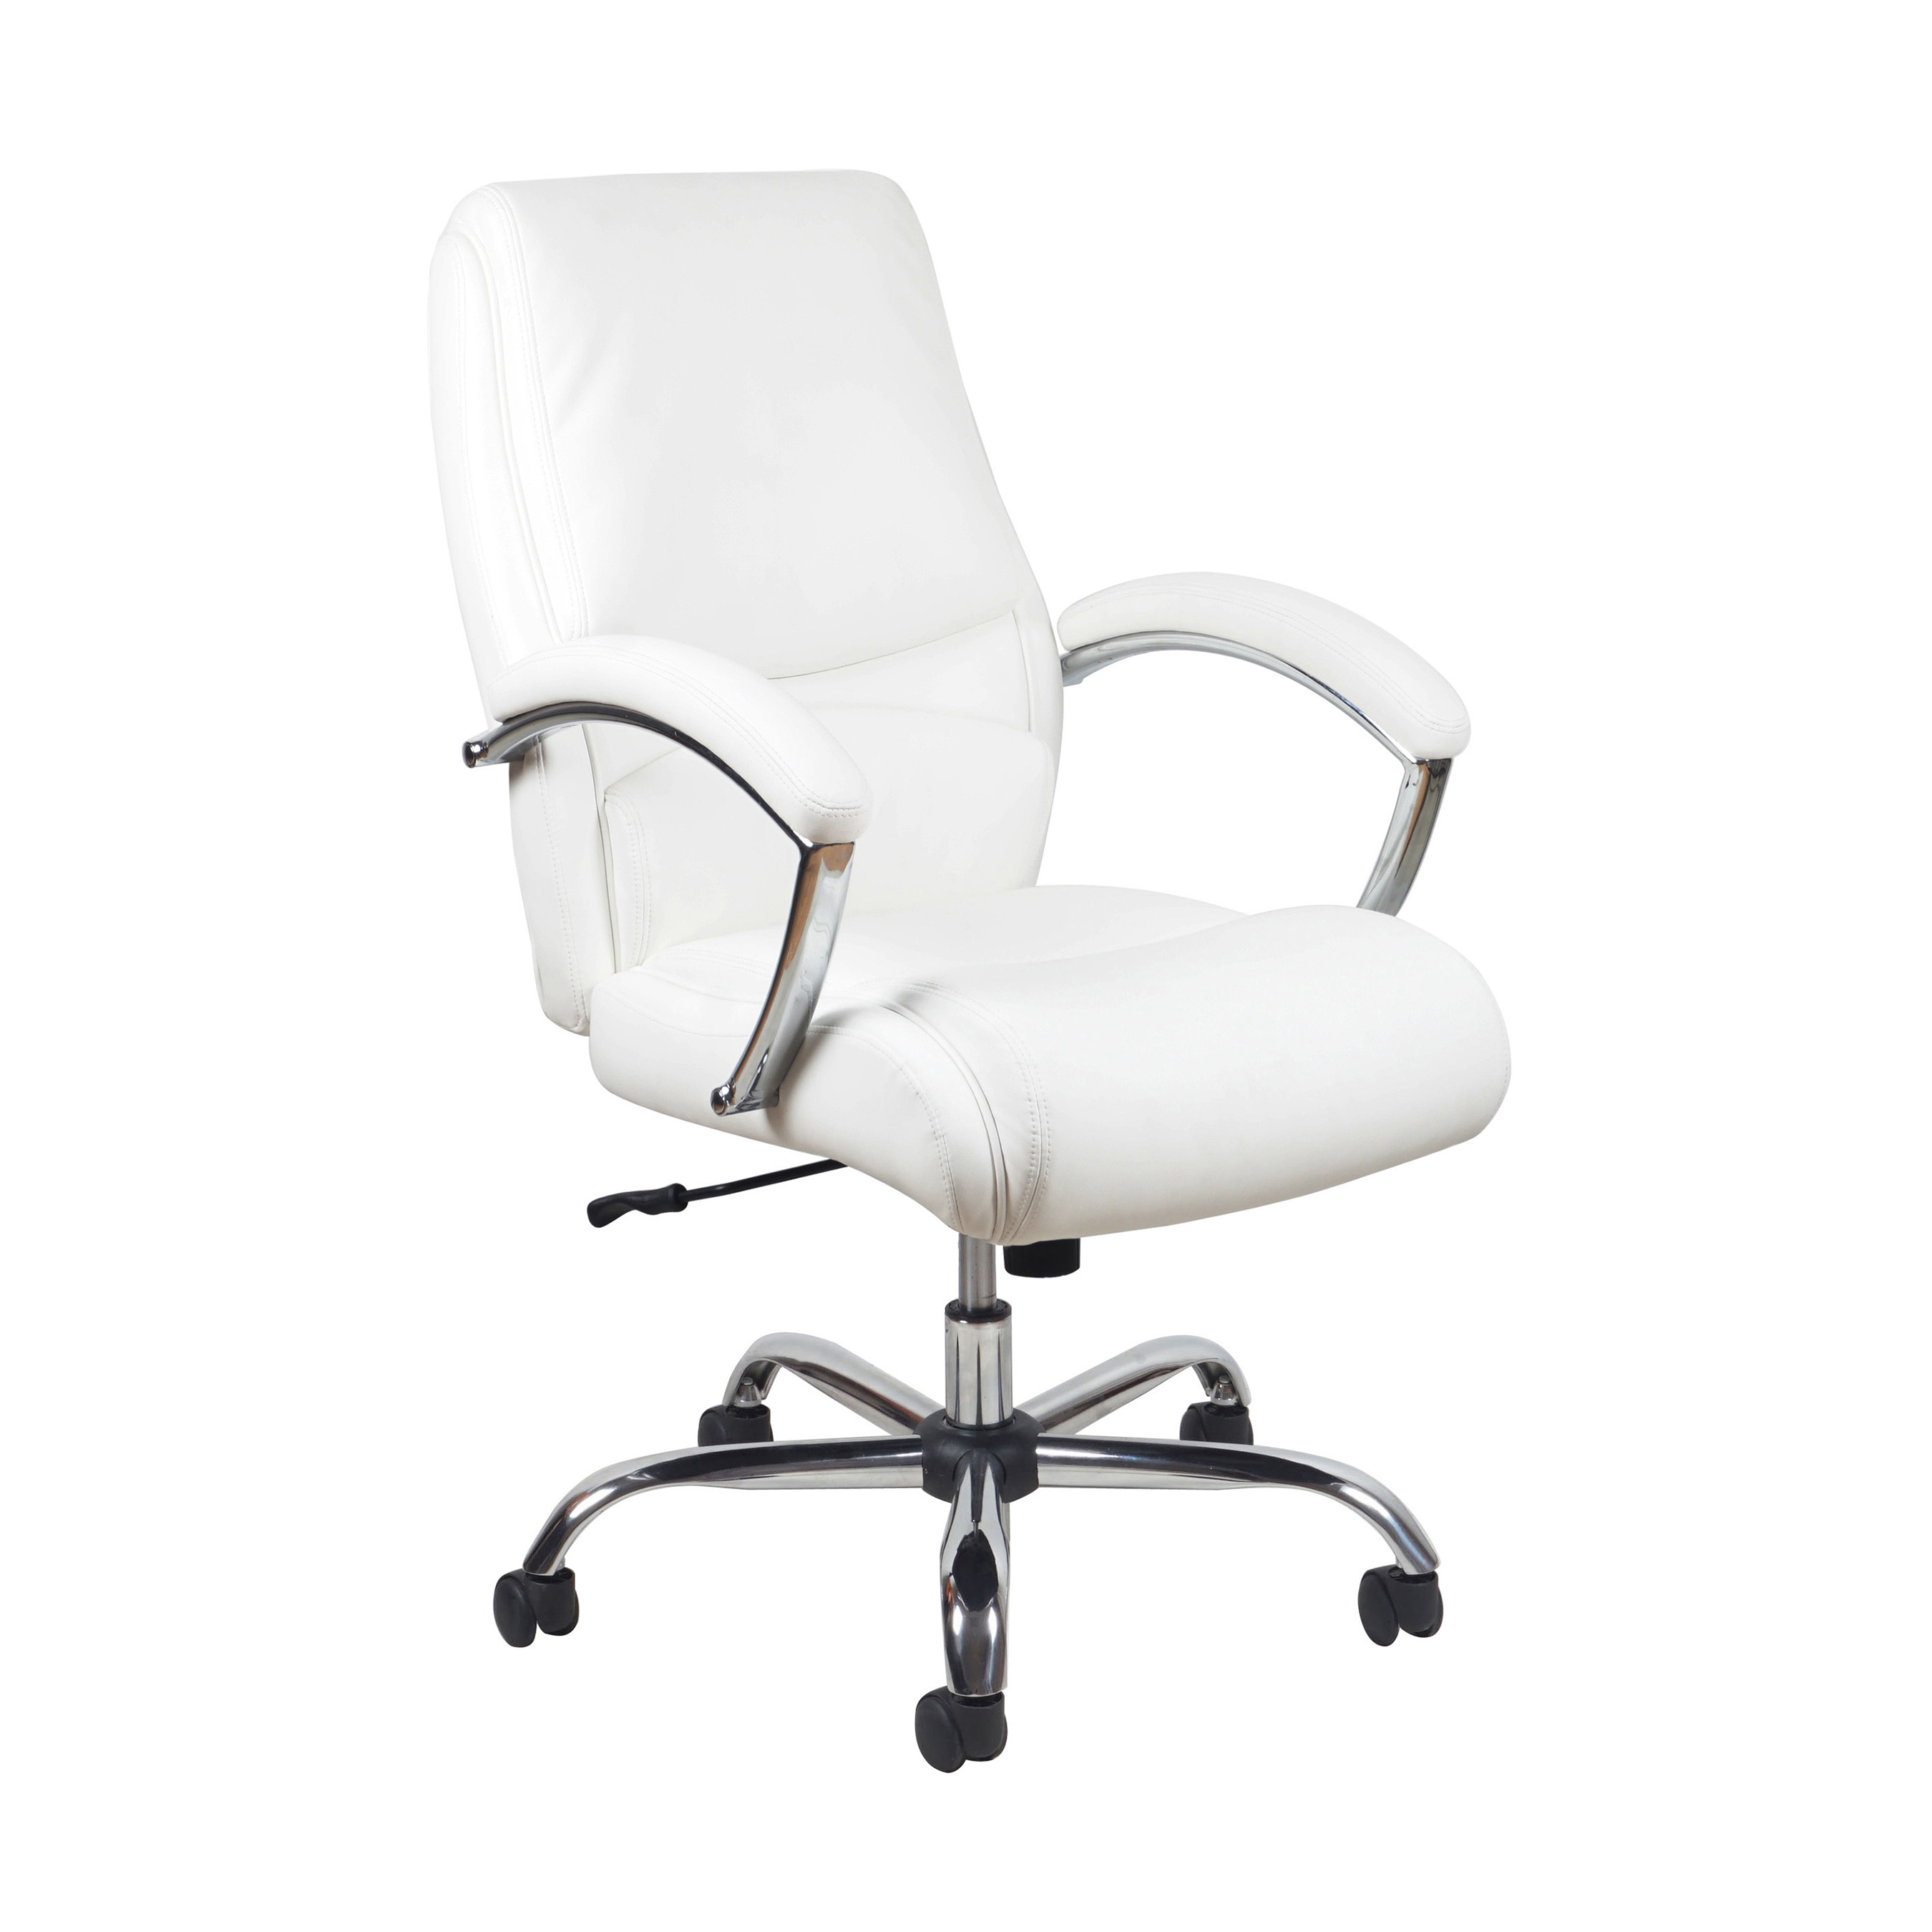 Essentials By OFM ESS 6070 Ergonomic High Back Leather Executive Chair,  White With Chrome Finish   Walmart.com